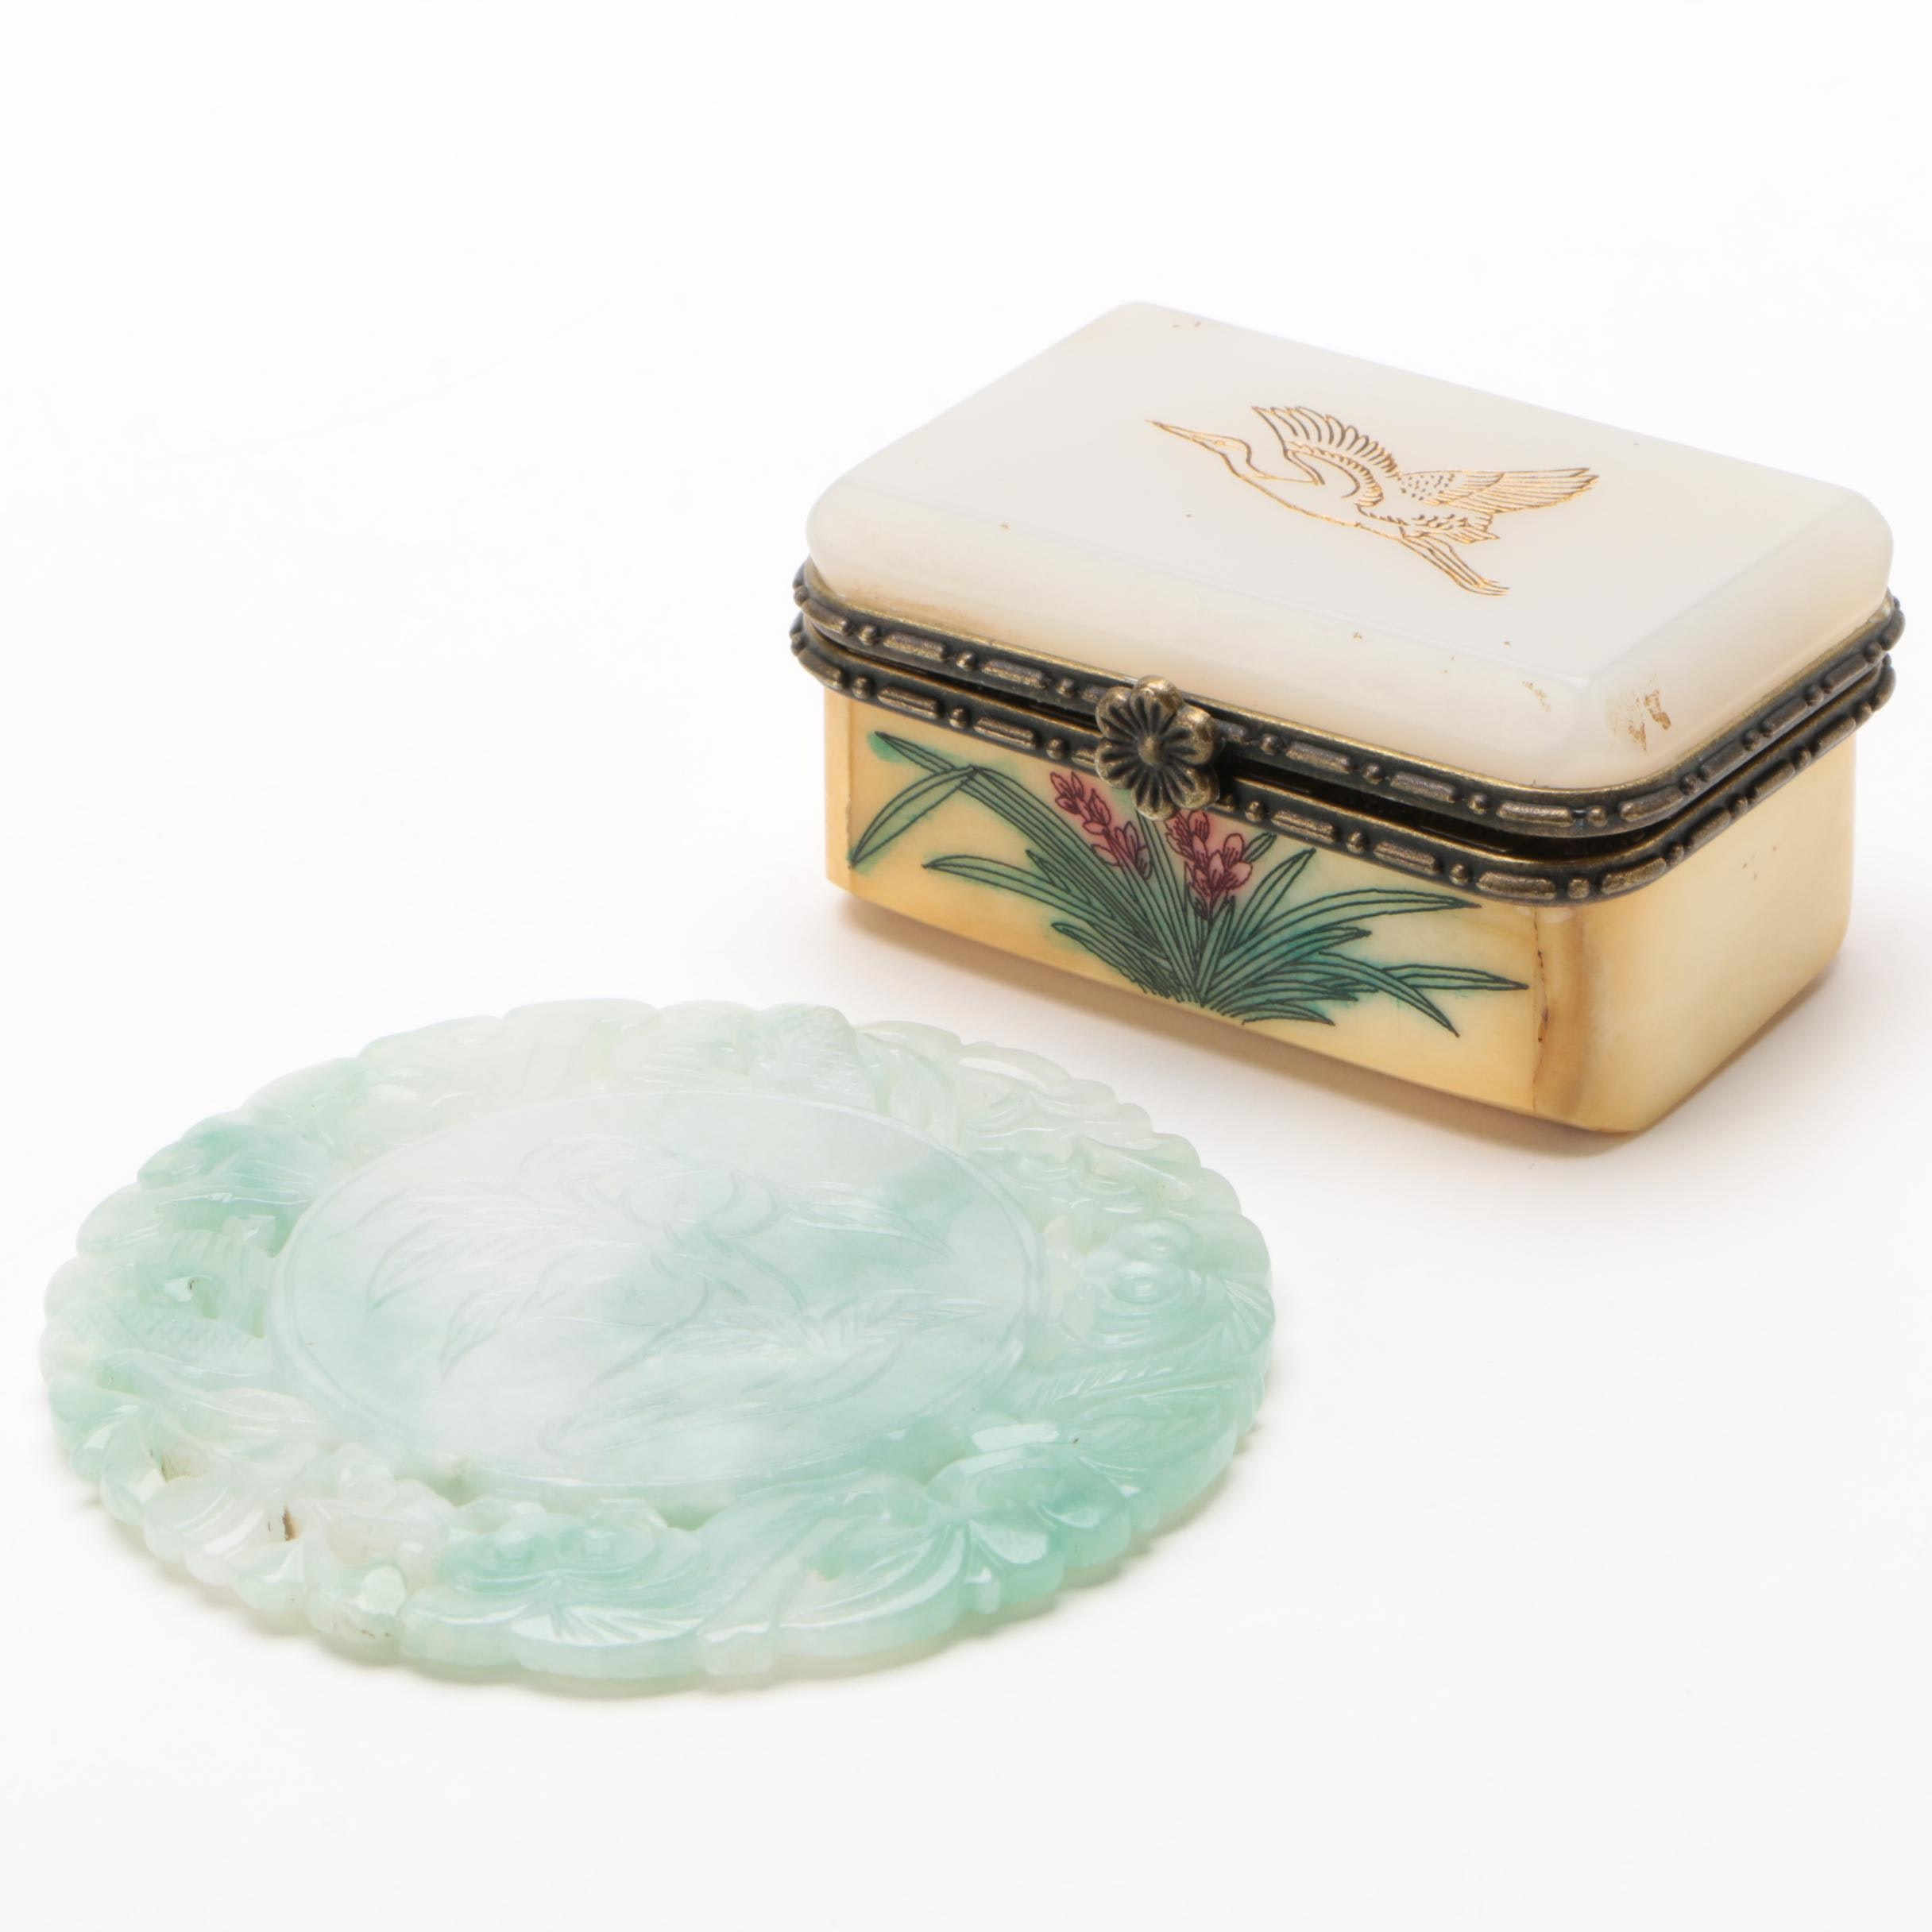 Chinese Carved Jadeite Medallion with Bone and Glass Box